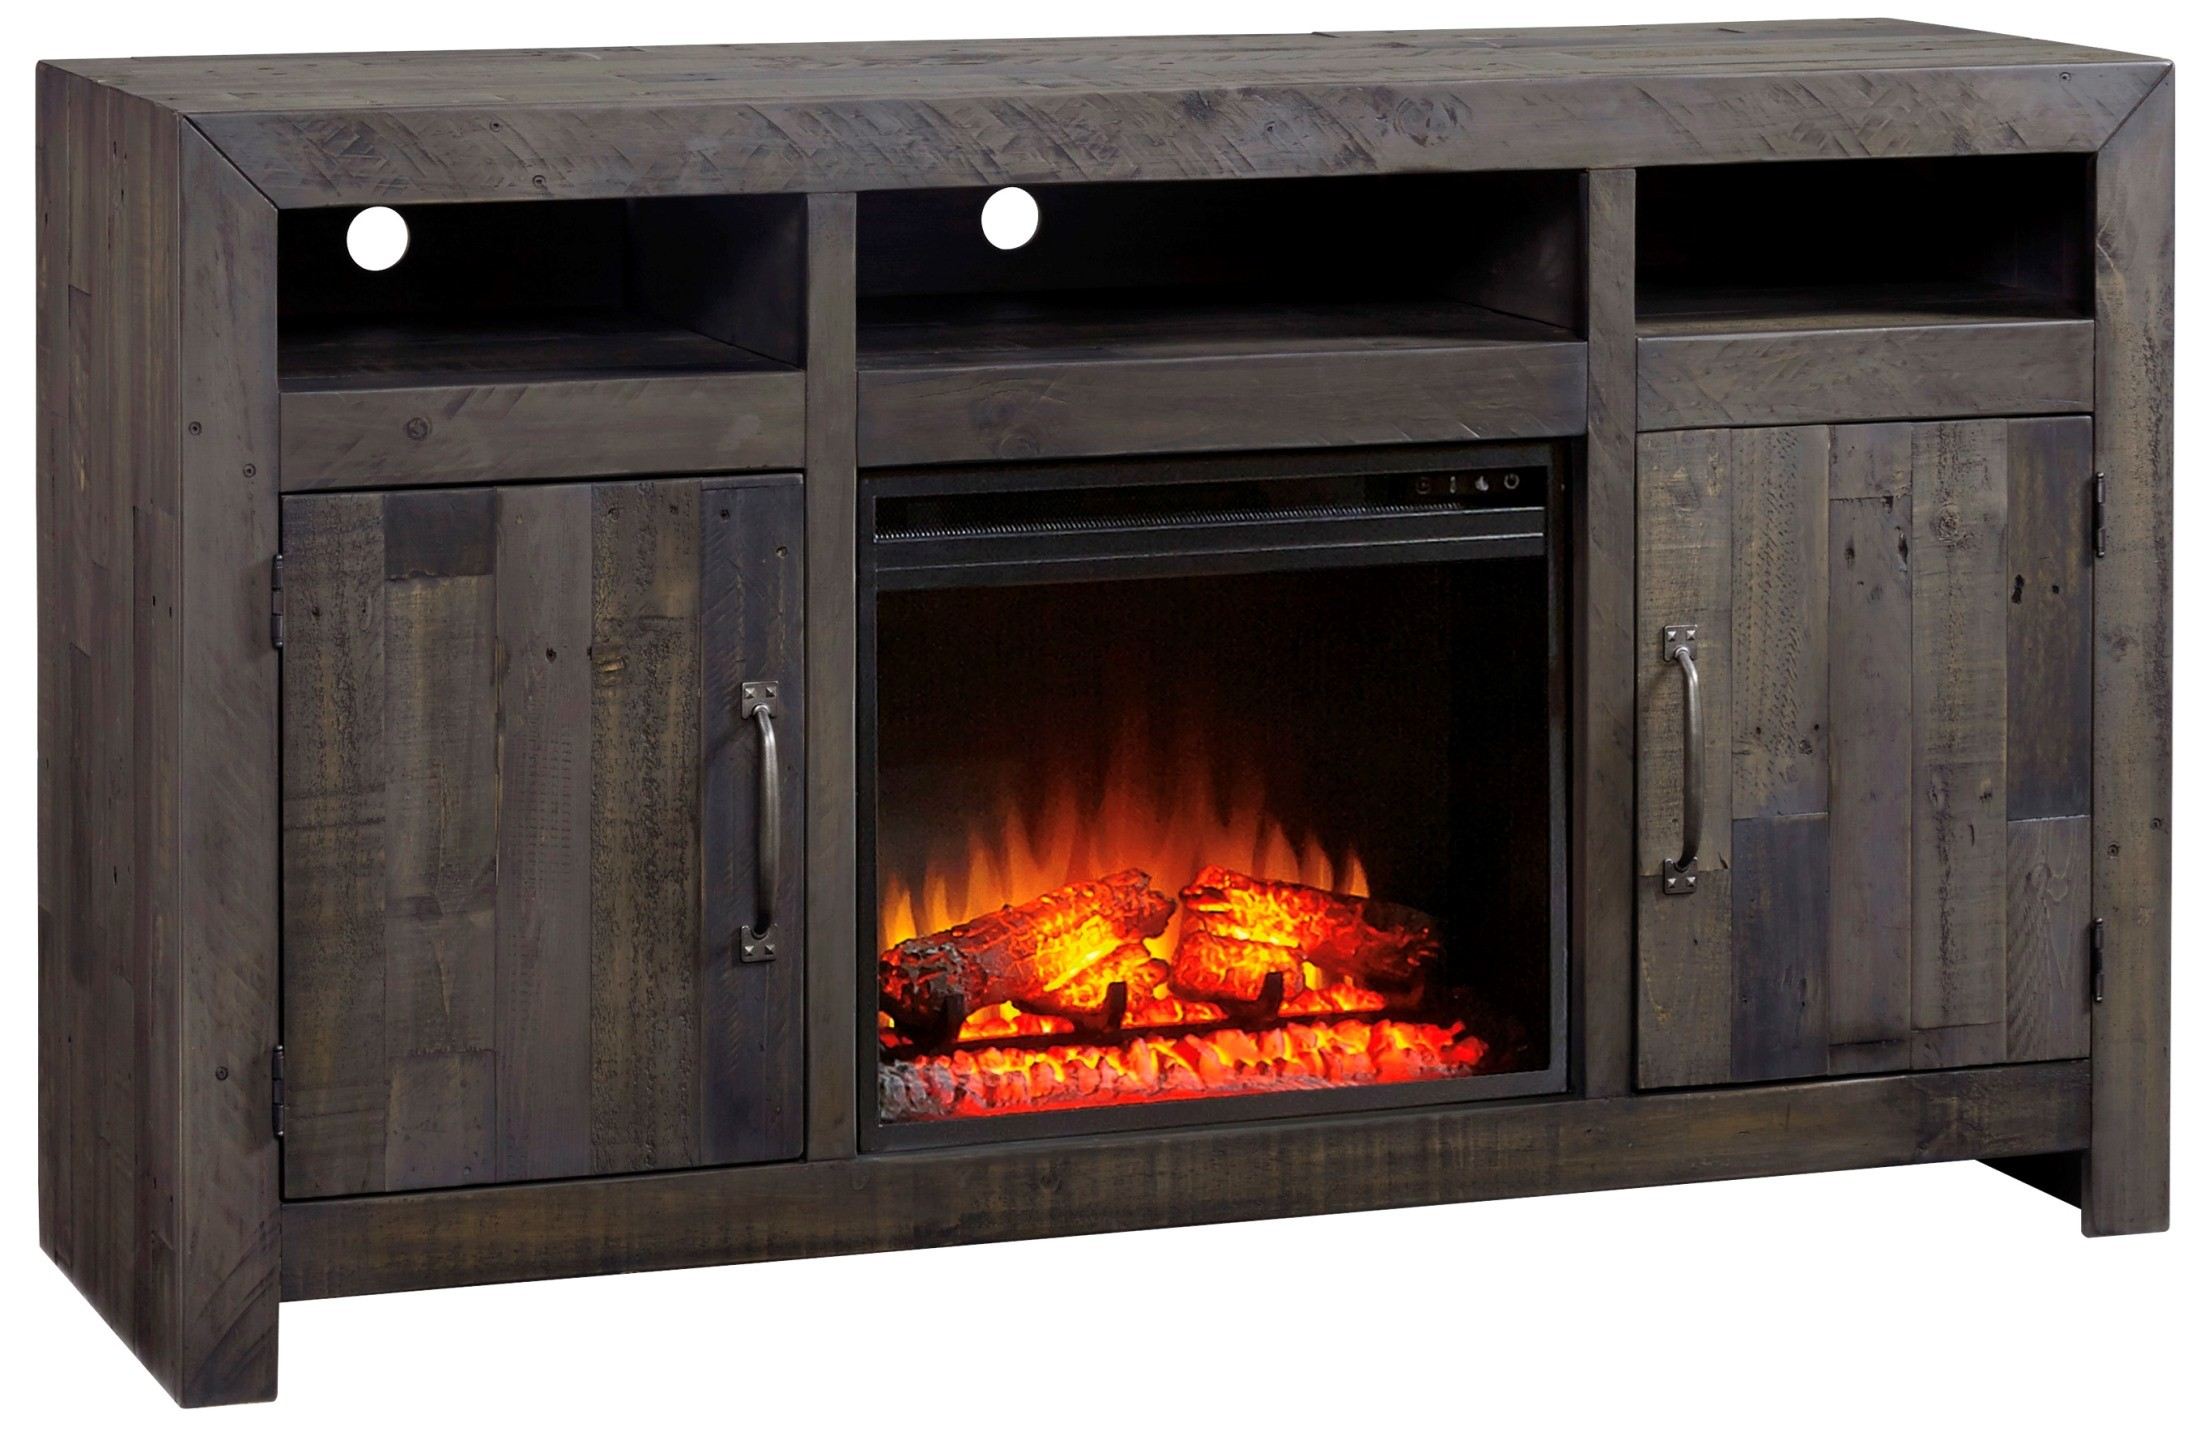 Mayflyn industrial gray lg tv stand with fireplace option for Fireplace options